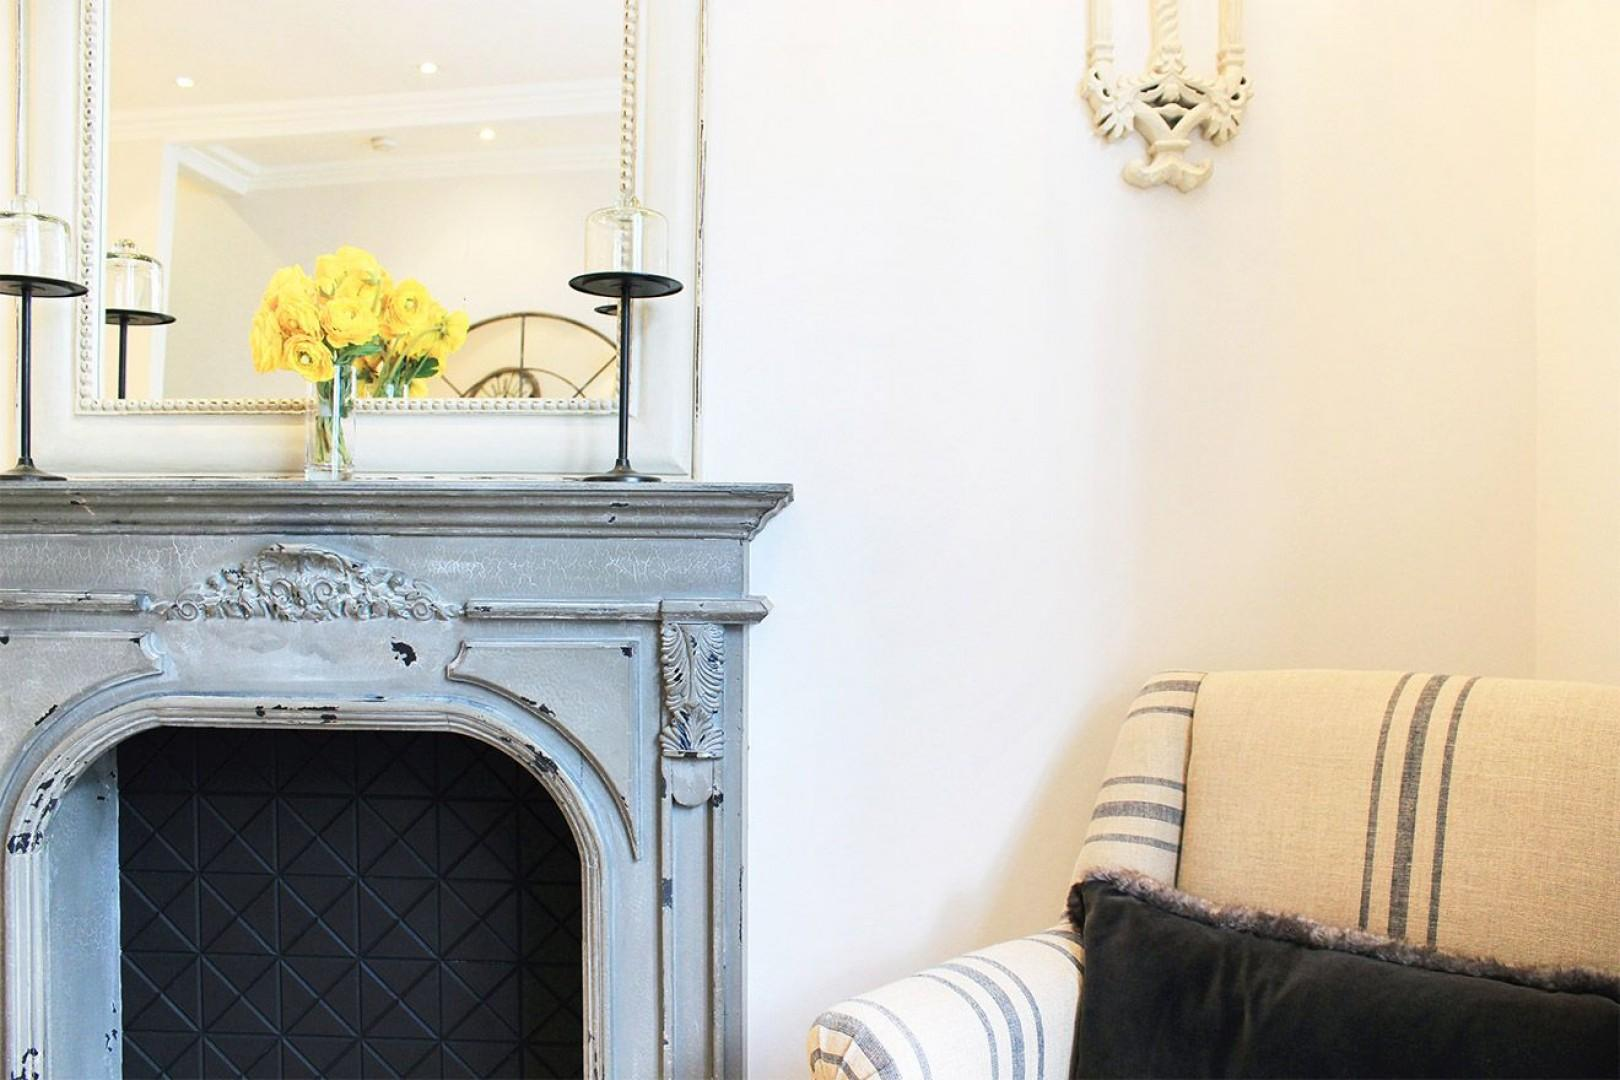 Relax after a long day exploring London in this comfortable seating area